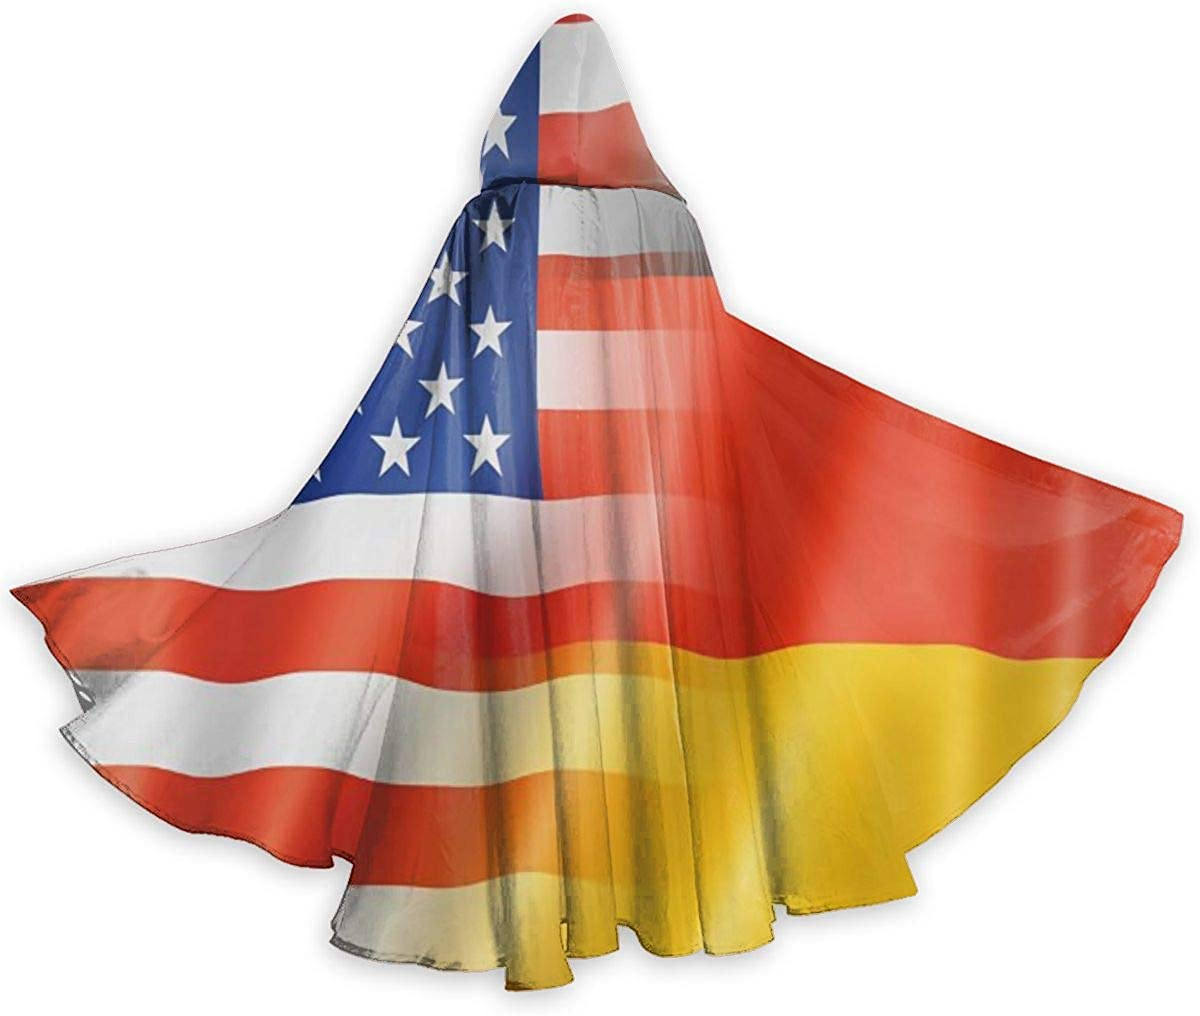 Carwayii German and American Flags Hallowee Durable Cloak Manufacturer direct delivery Hooded Max 89% OFF